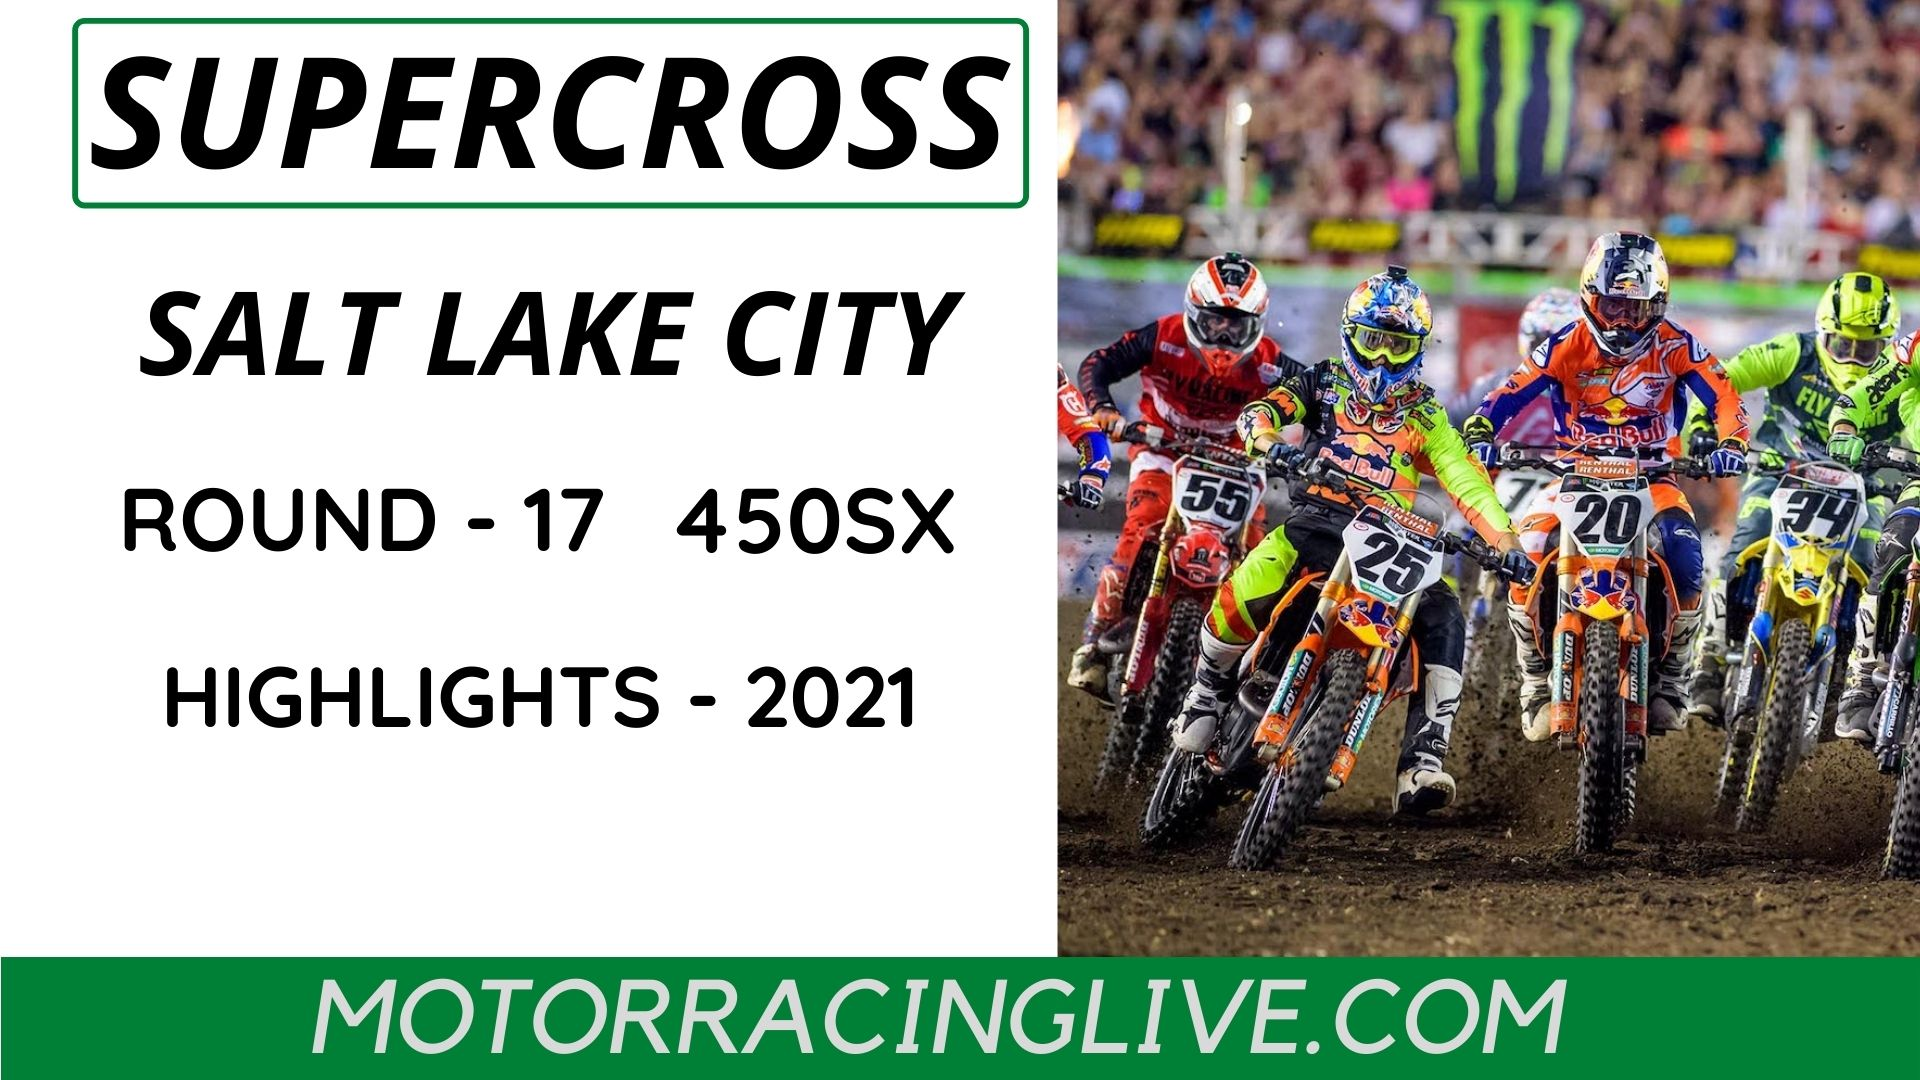 Salt Lake City Round 17 450SX Highlights 2021 Supercross